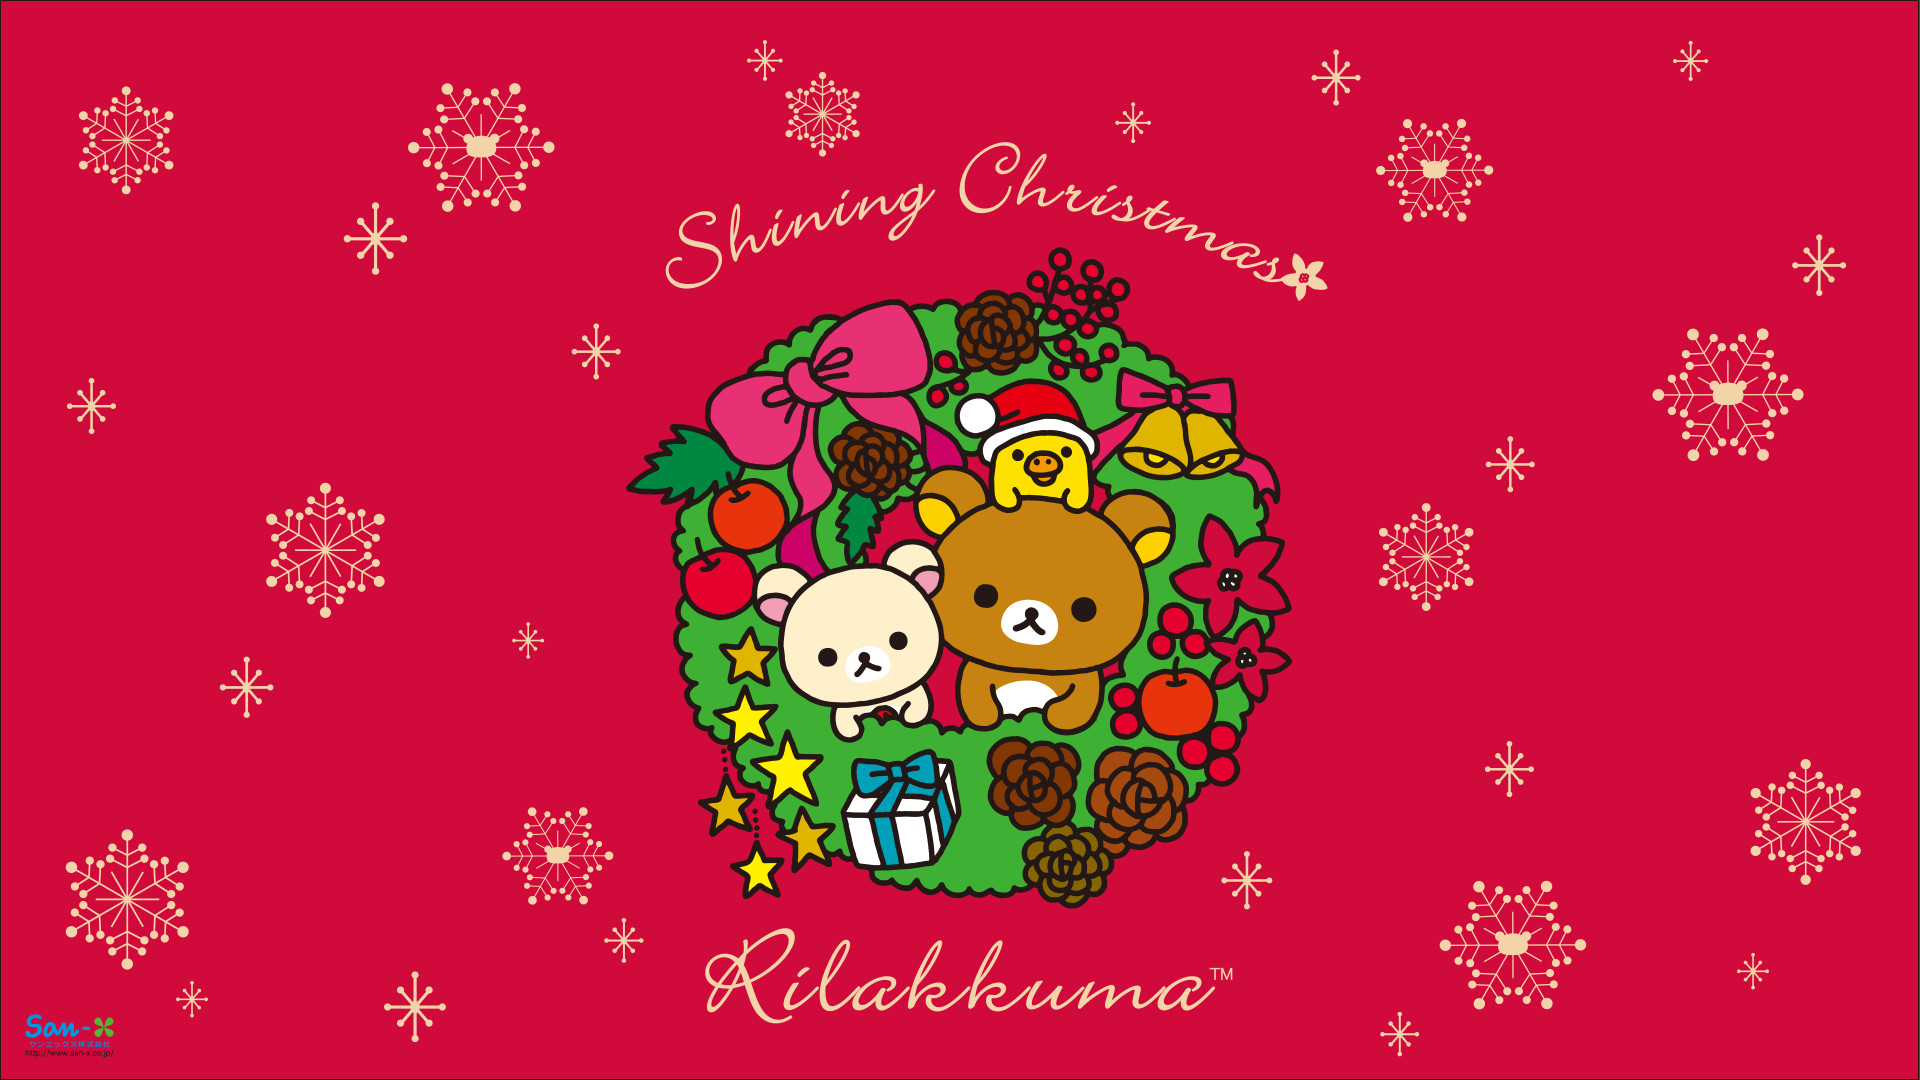 1920x1080 Kawaii Rilakkuma Christmas Wallpaper